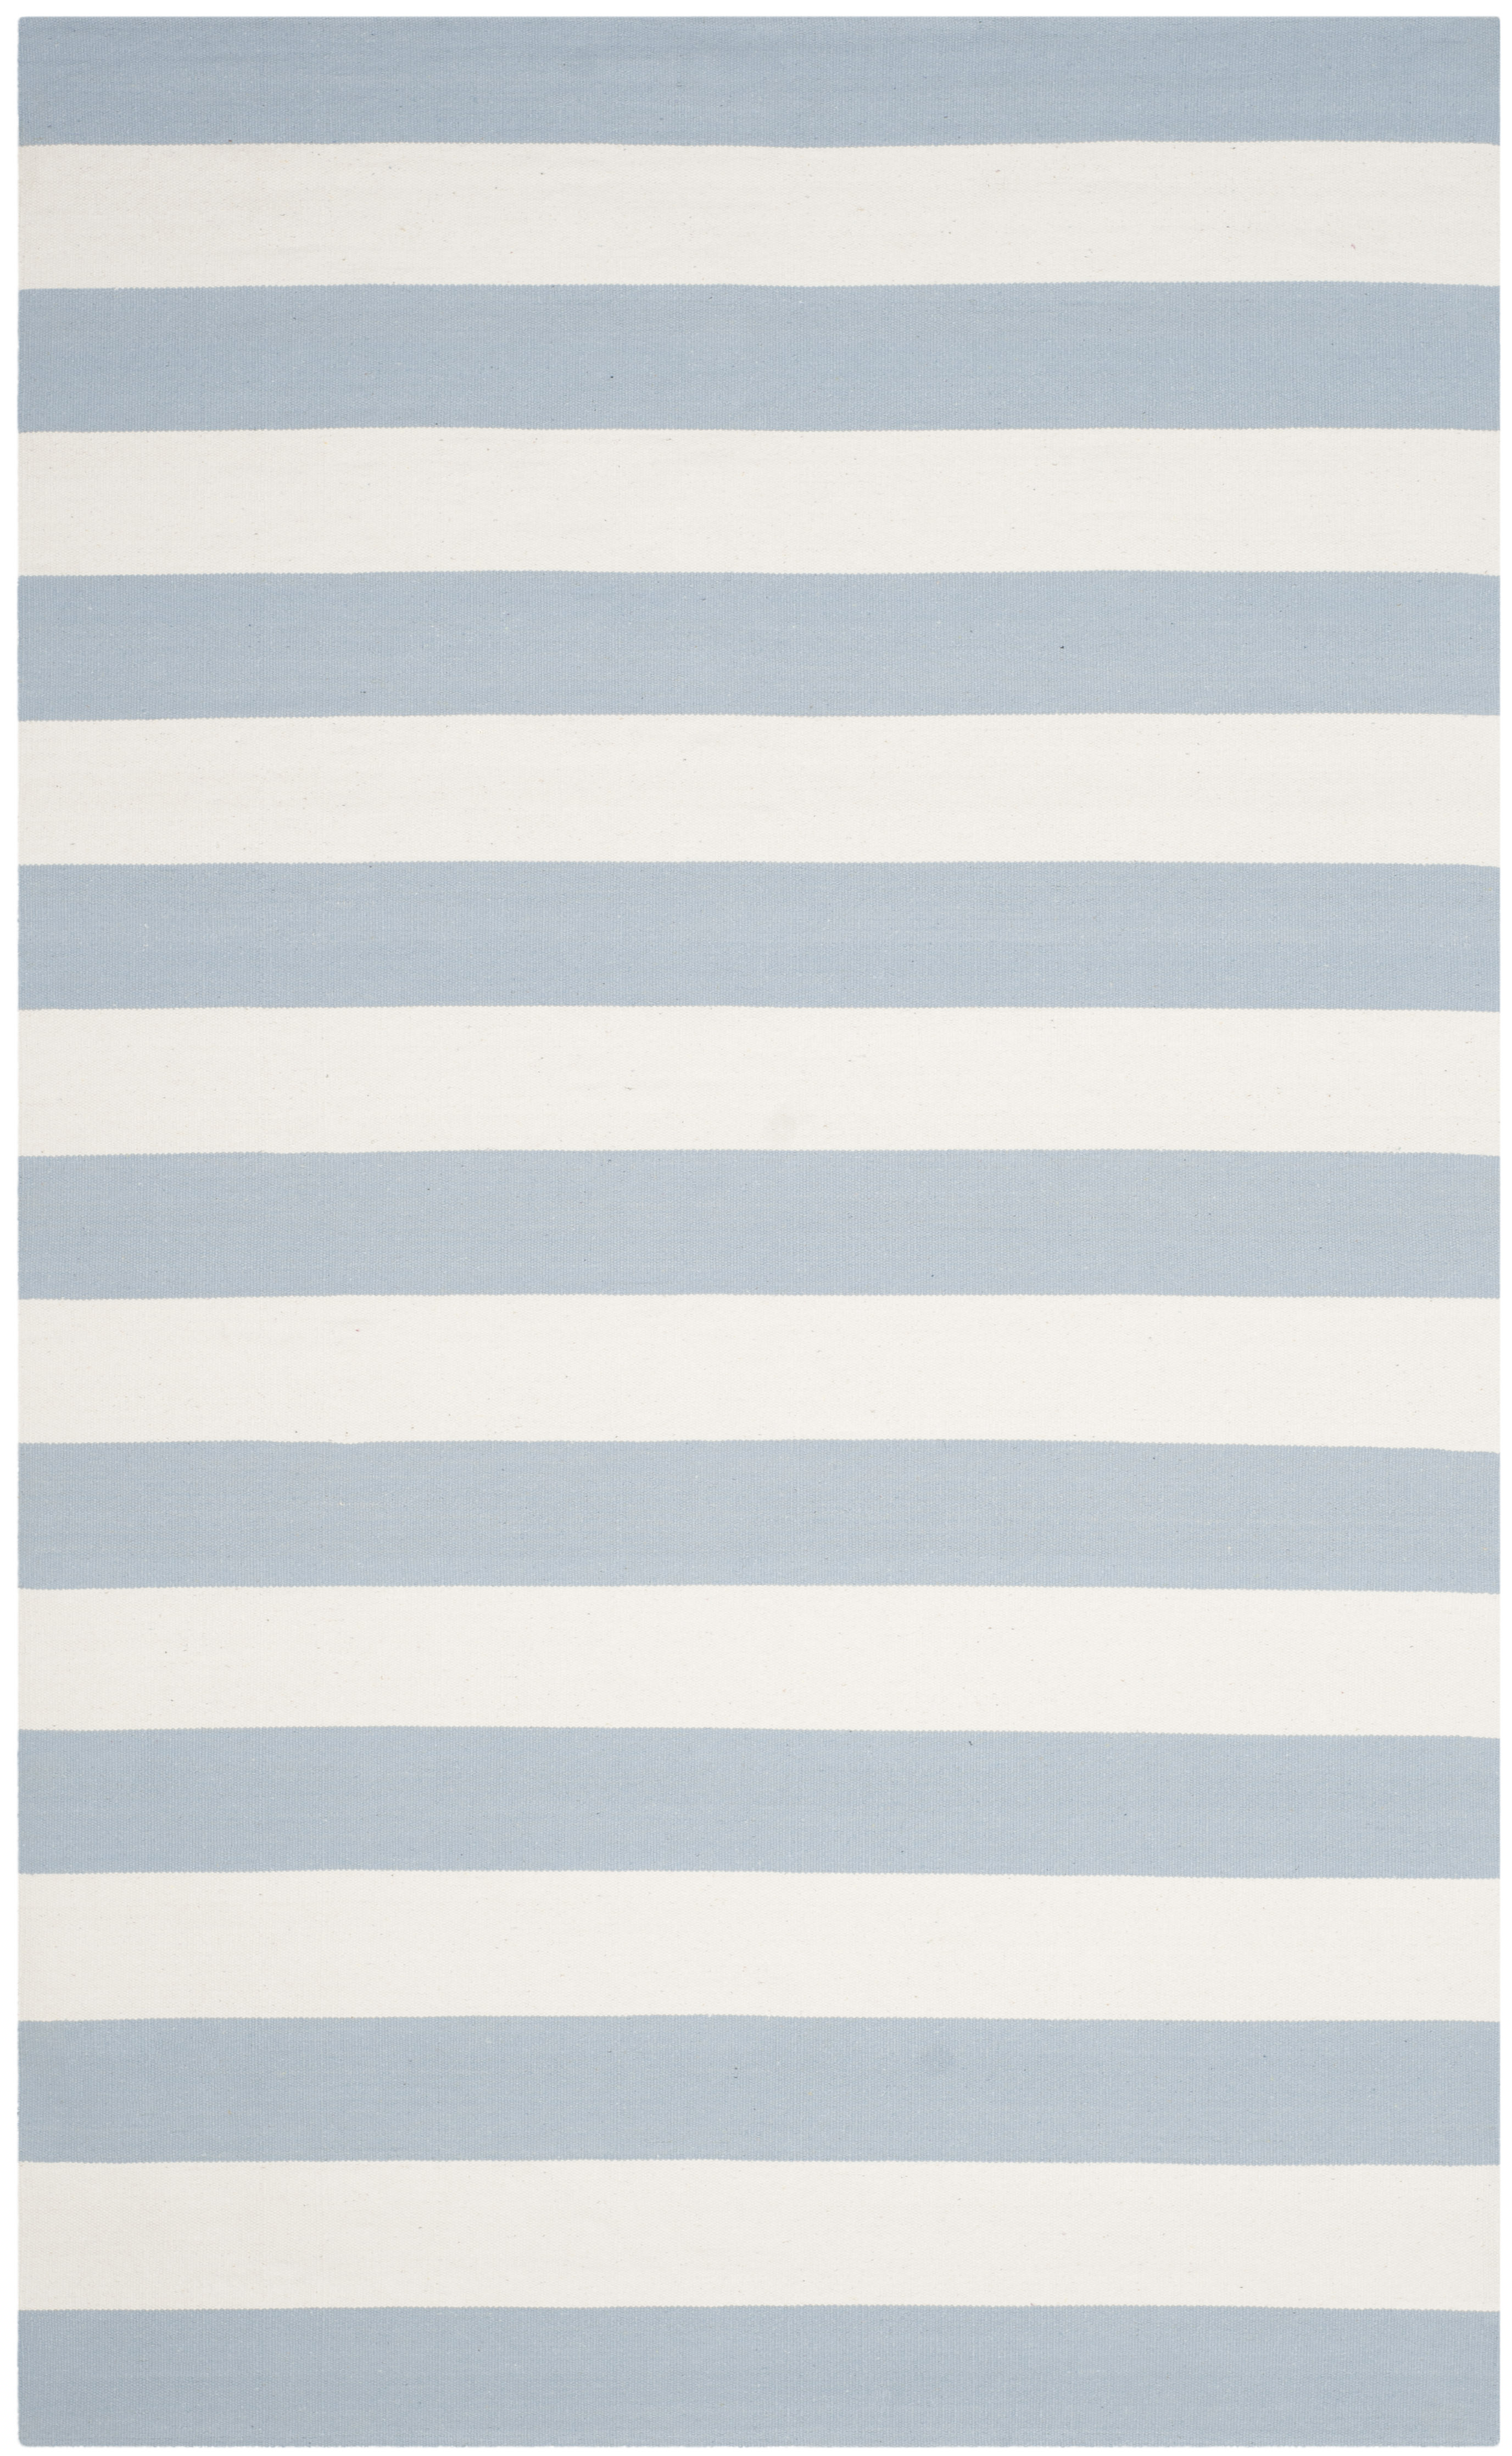 Image of: 5×8 Striped Blue White Area Rug Nautical Beach House Katie Considers